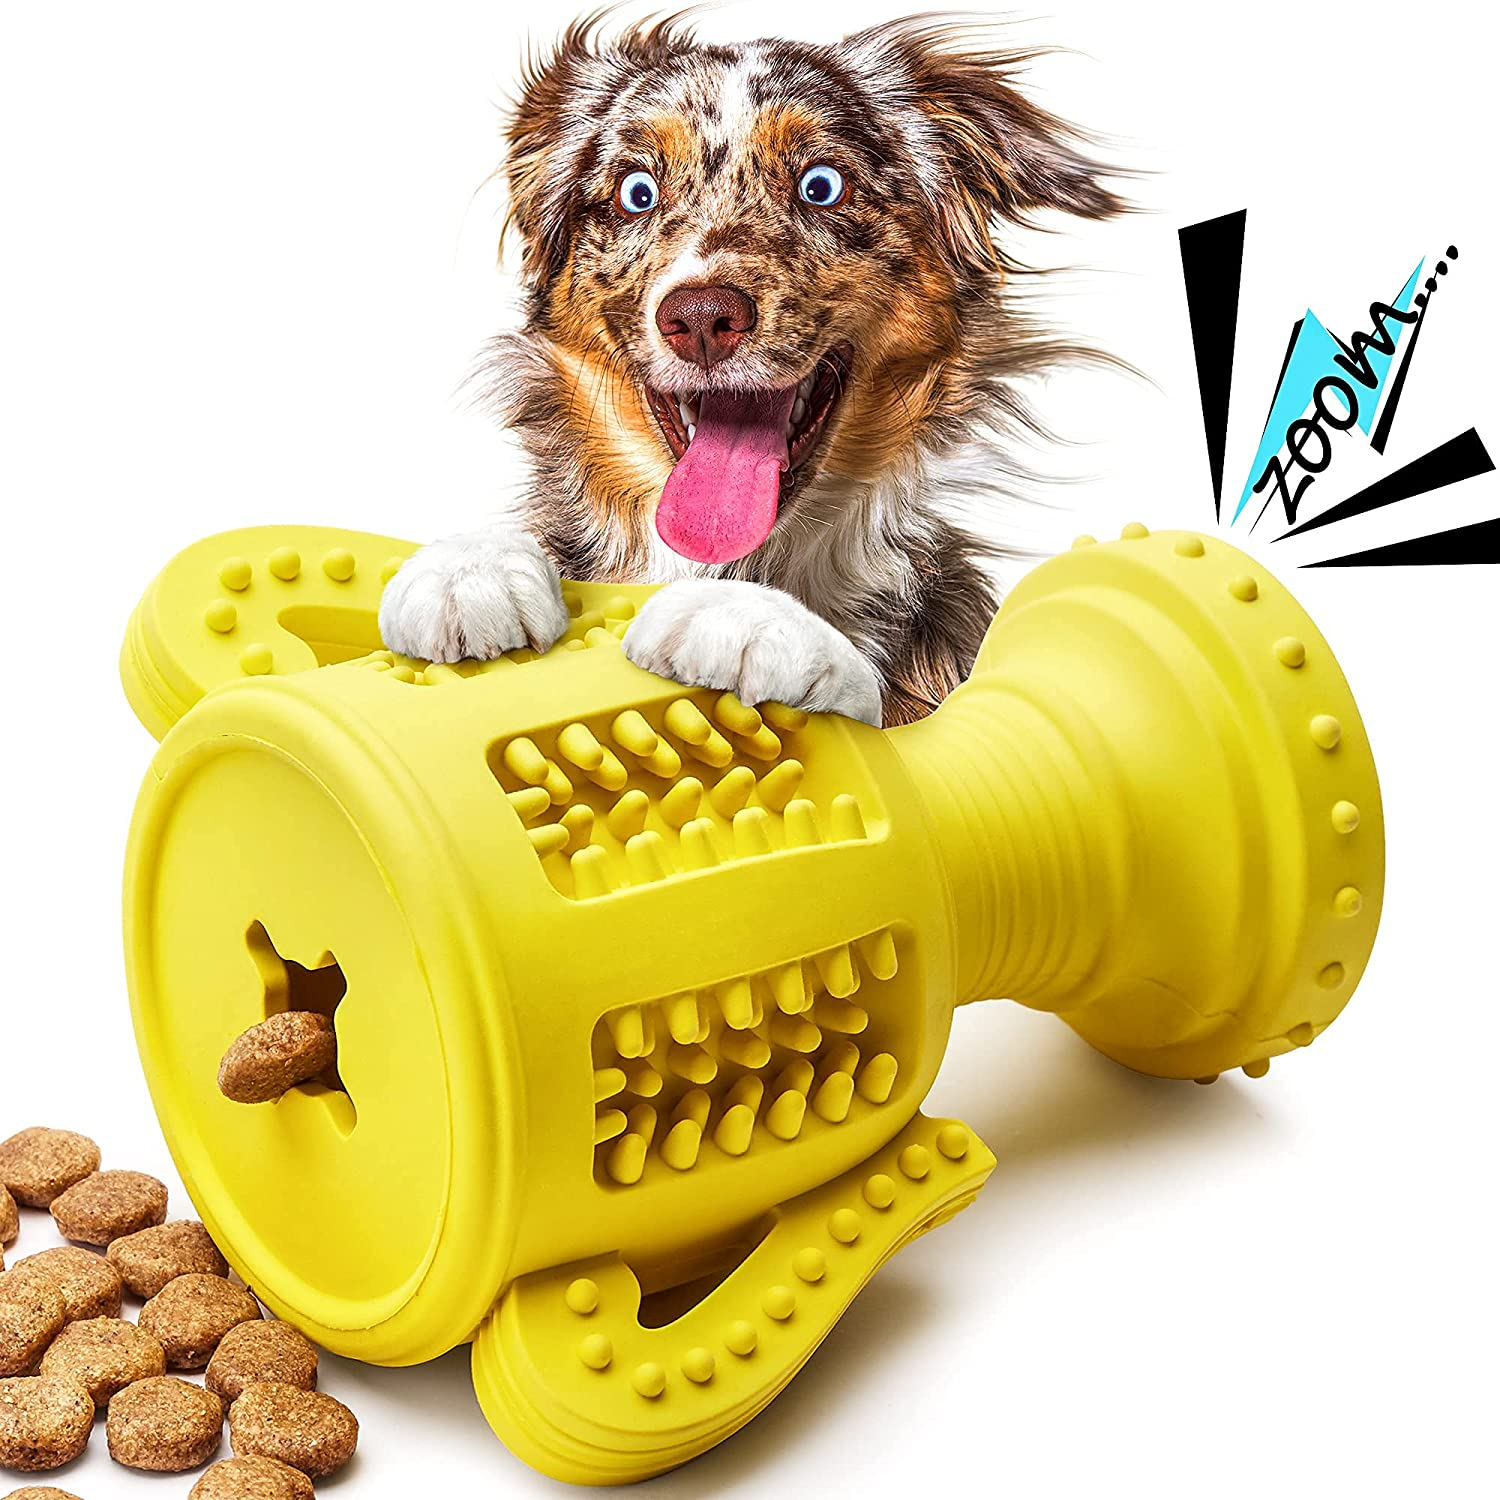 Dog Max 46% OFF Toys for A surprise price is realized Aggressive Dispensing To Chewers Treat